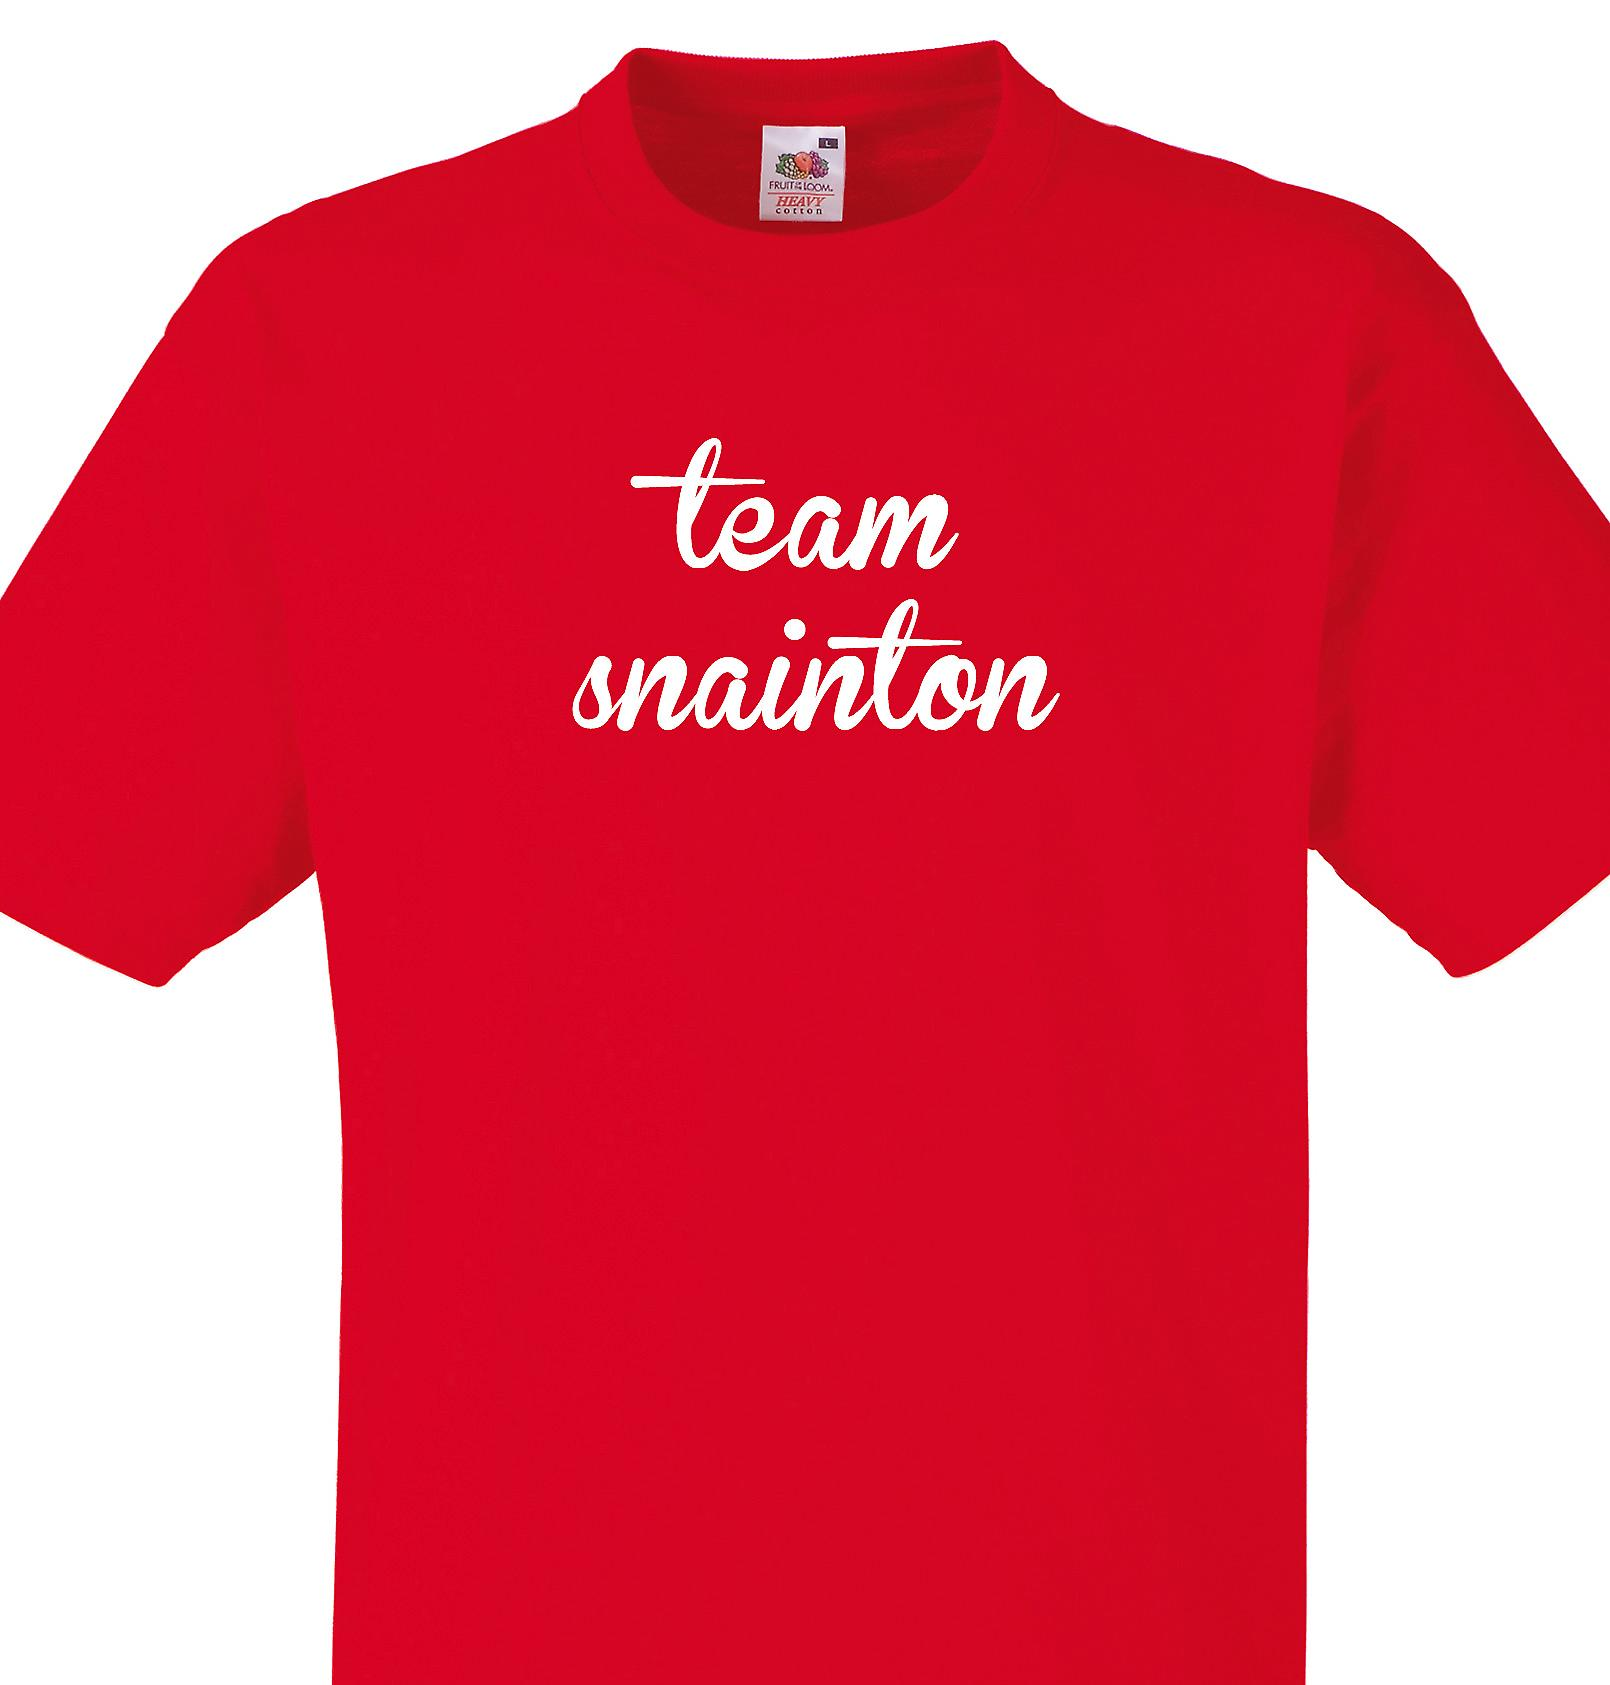 Team Snainton Red T shirt